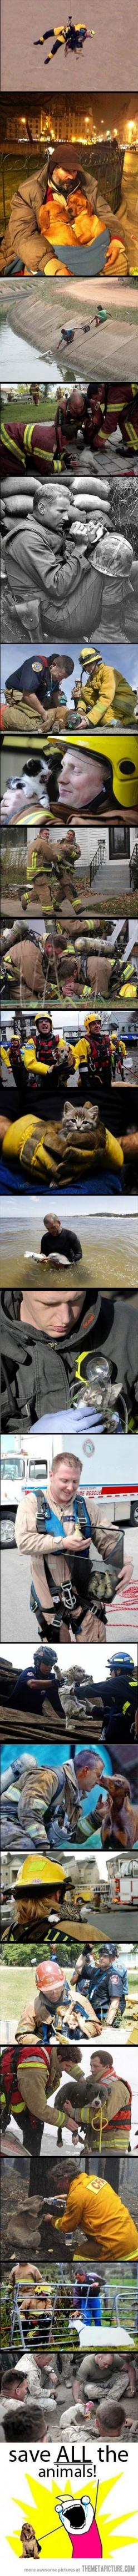 This is what real heroes do!: Picture, Animal Rescue, Saving Animals, Hero, Koala, Faith In Humanity Restored, Tear, So Happy